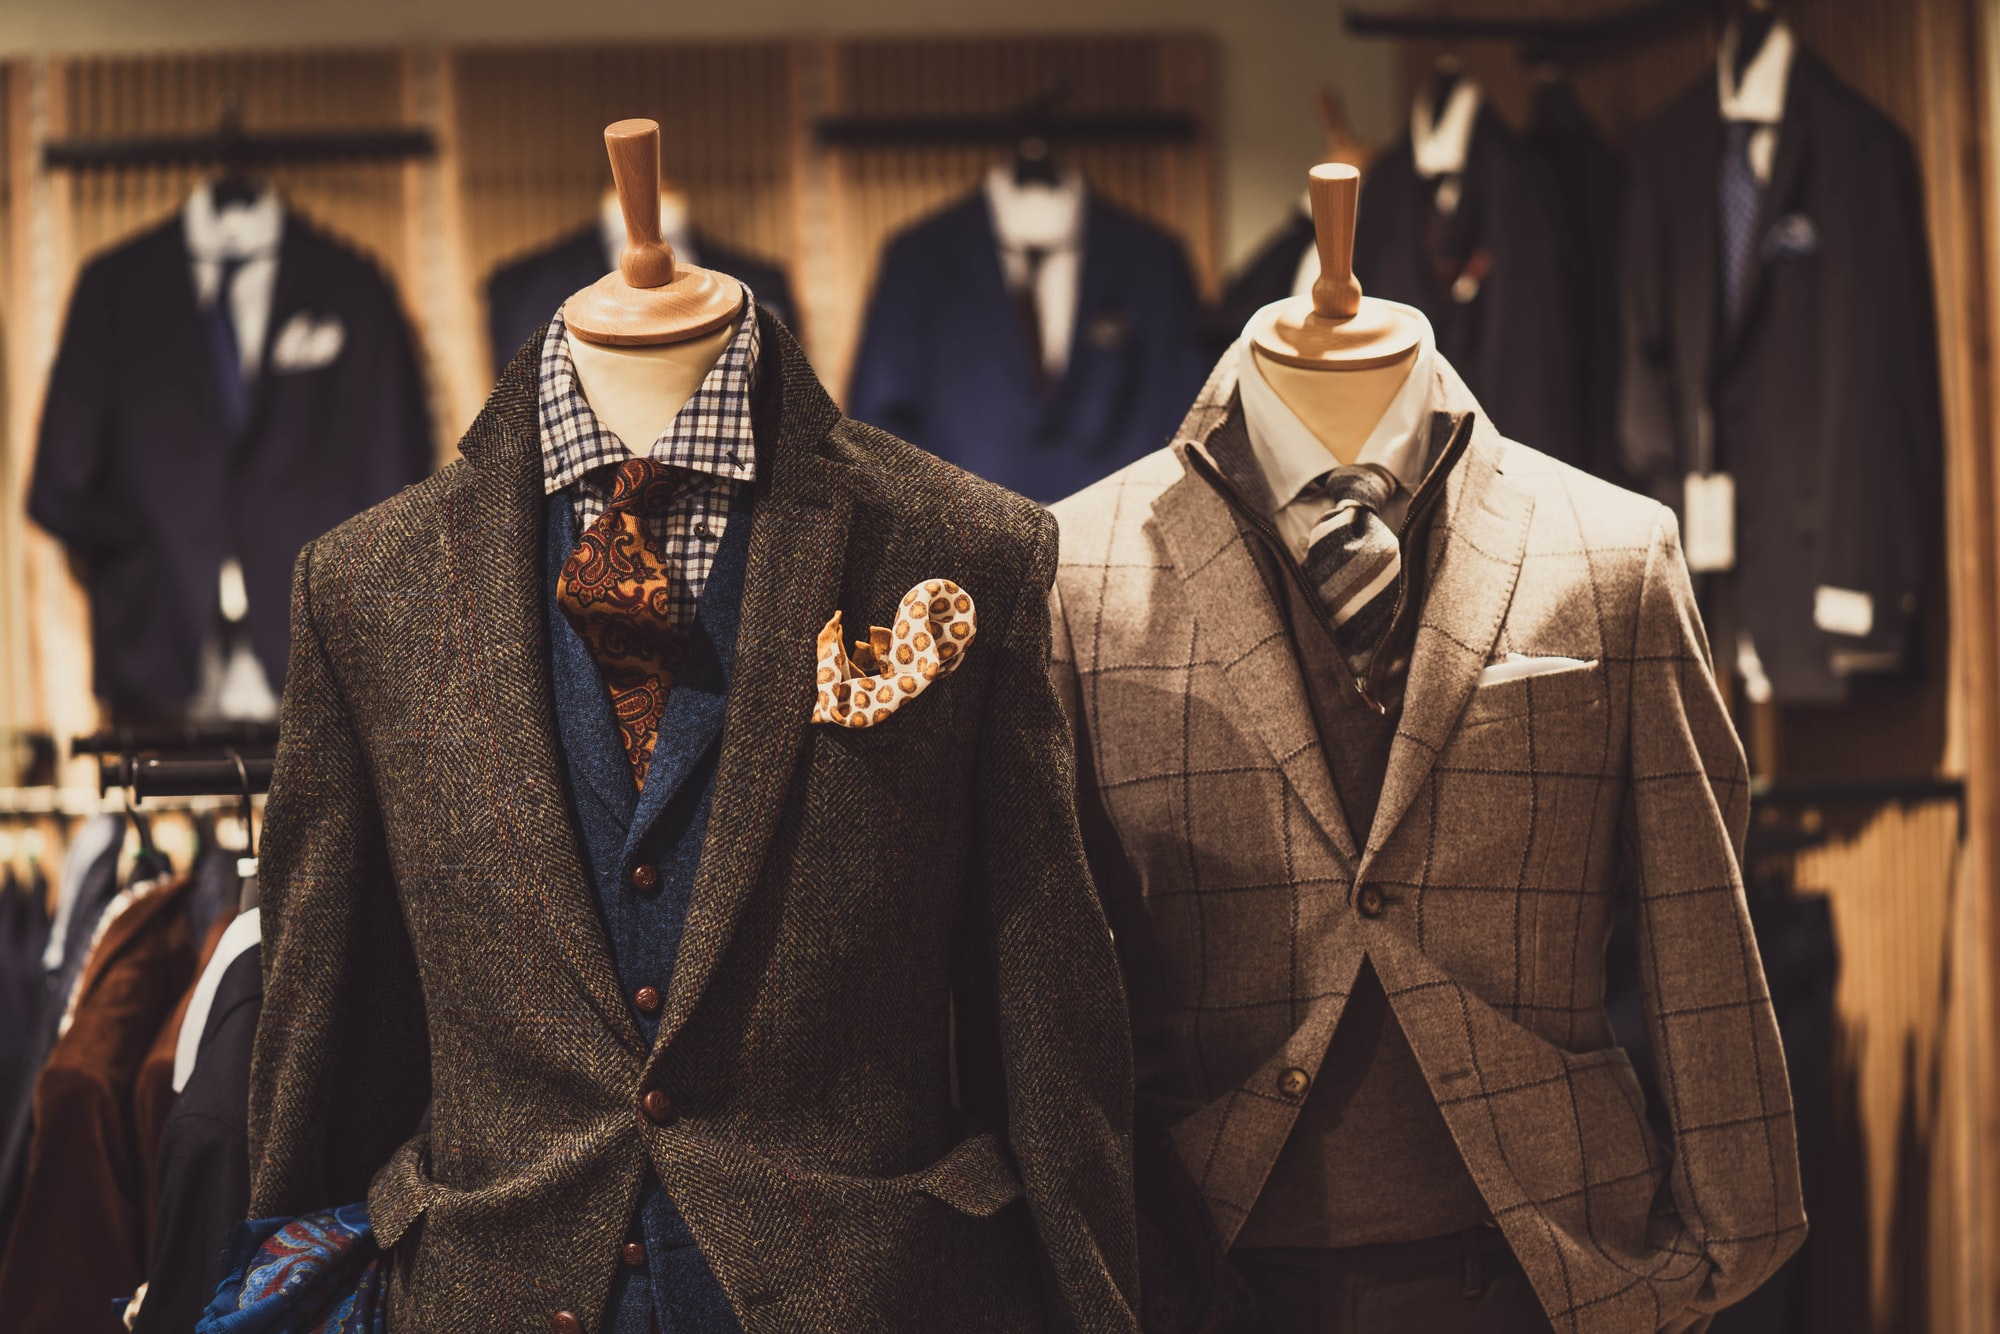 Suit Jackets, Blazers, and Sport Coats: Oh My!